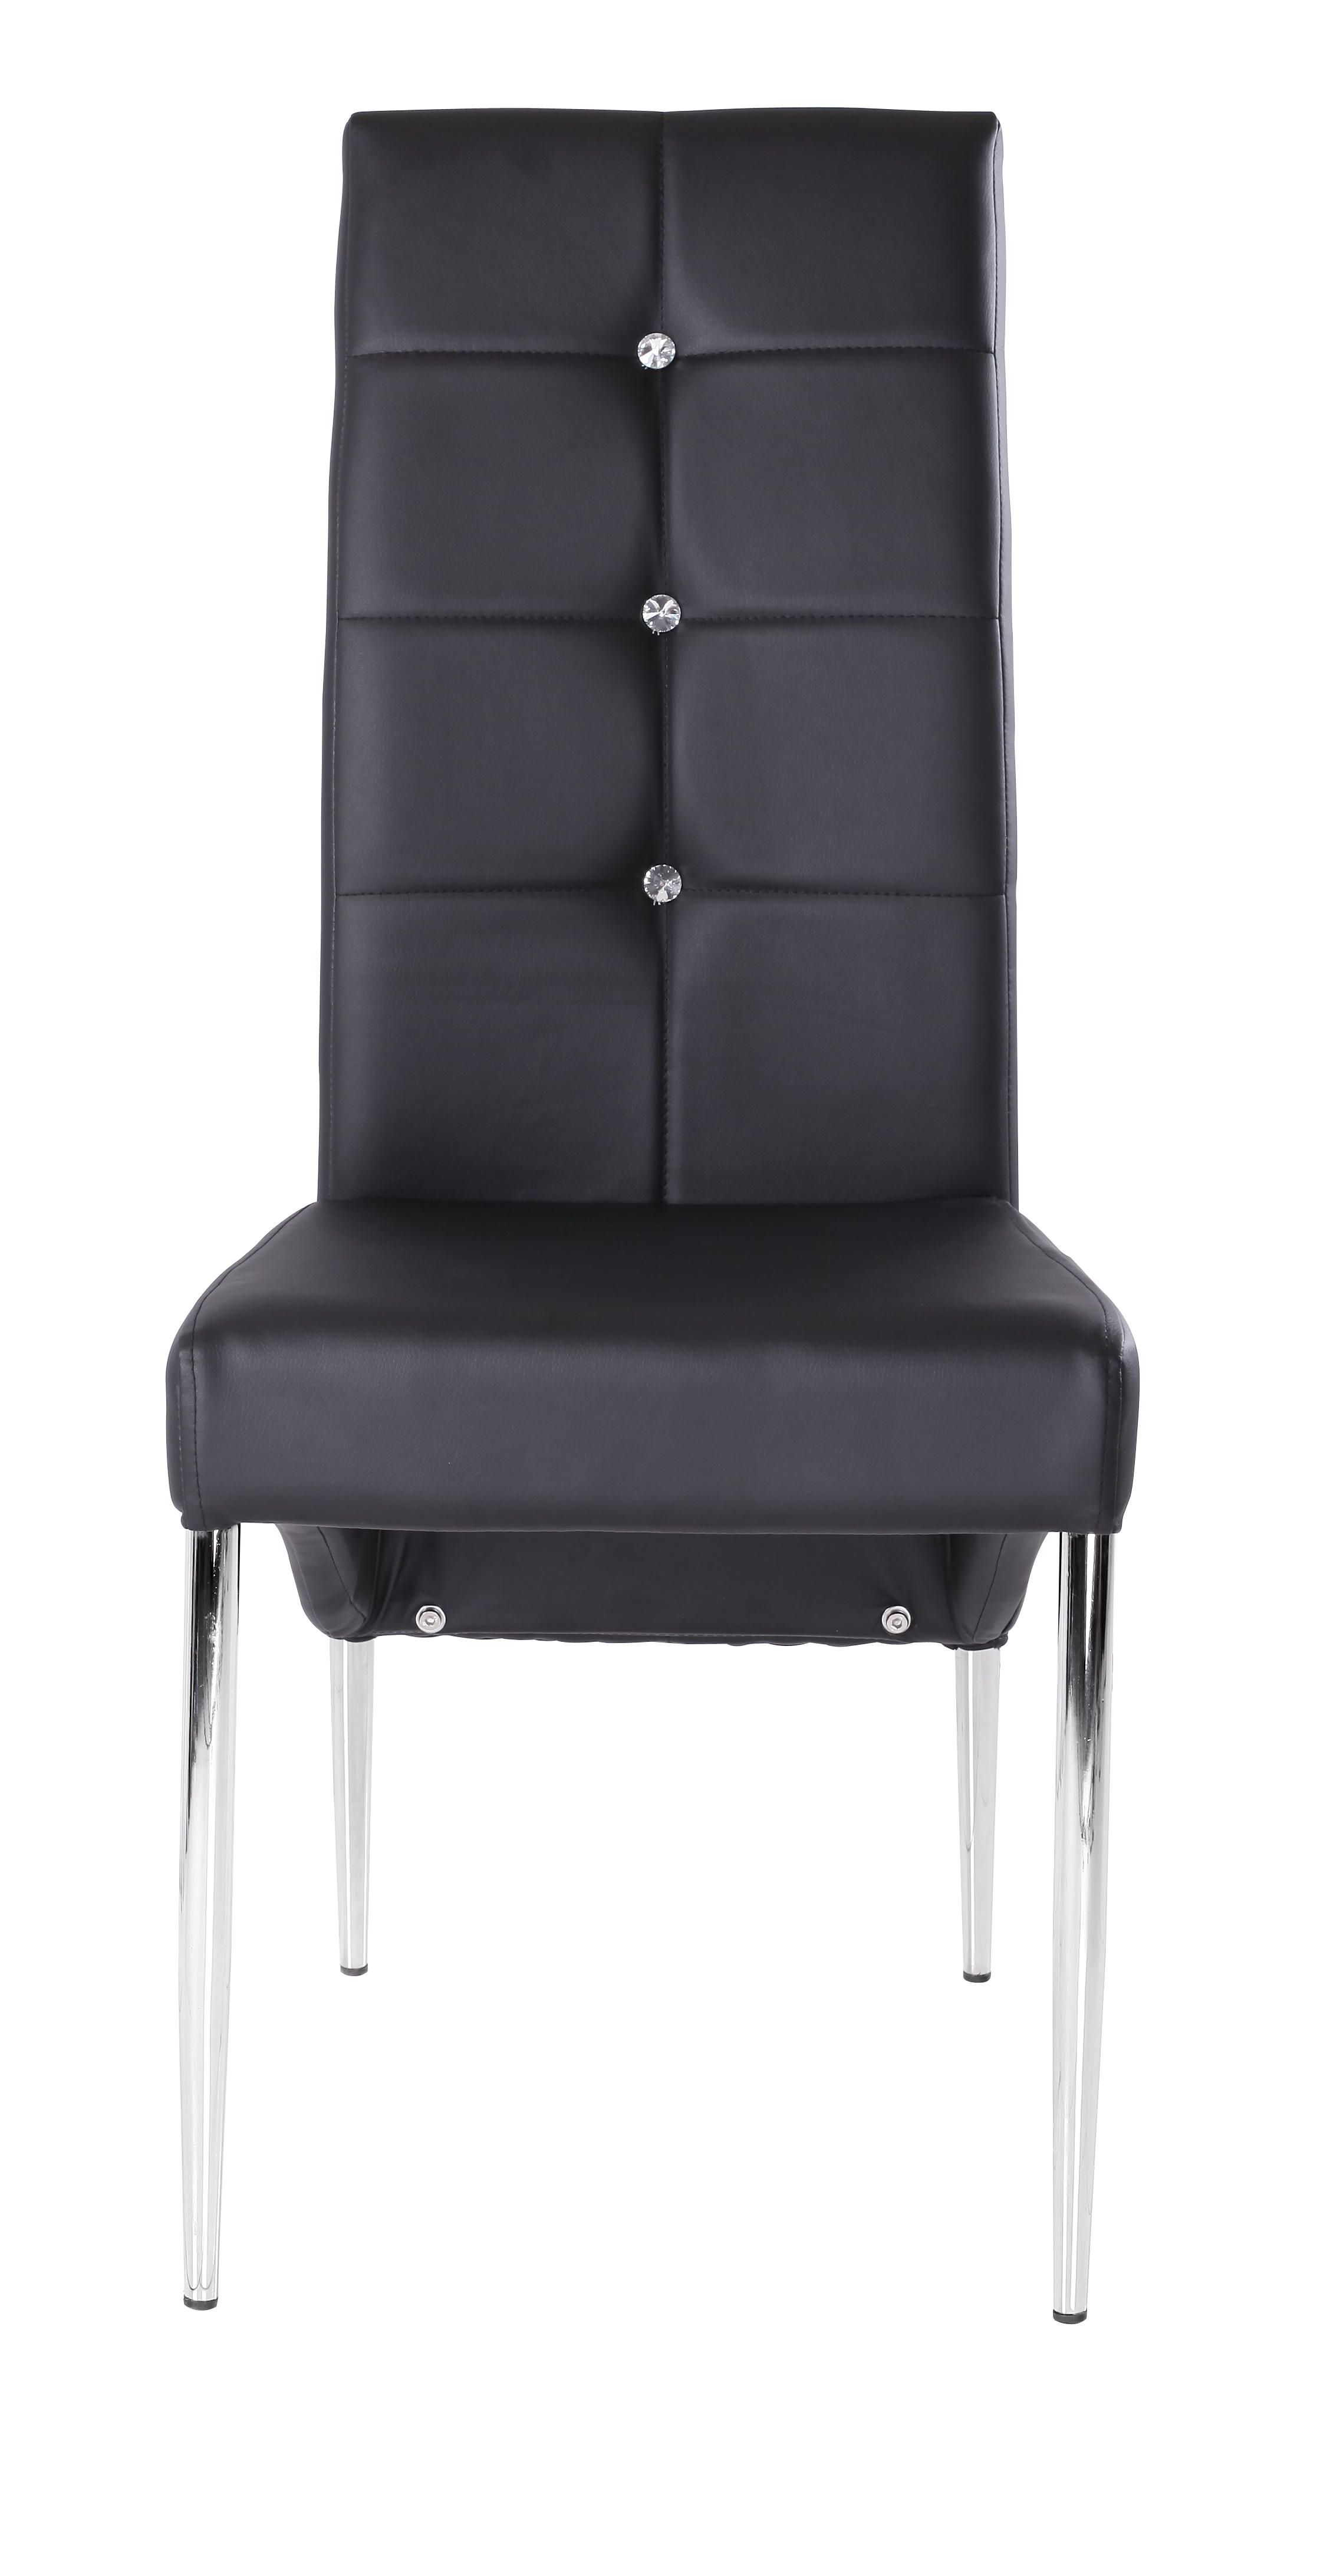 black leather high back dining chairs on side 4262 black bling your dining room side chair in black pu with rhinestone pic 1 dark wood dining table wood dining table dining room design pinterest